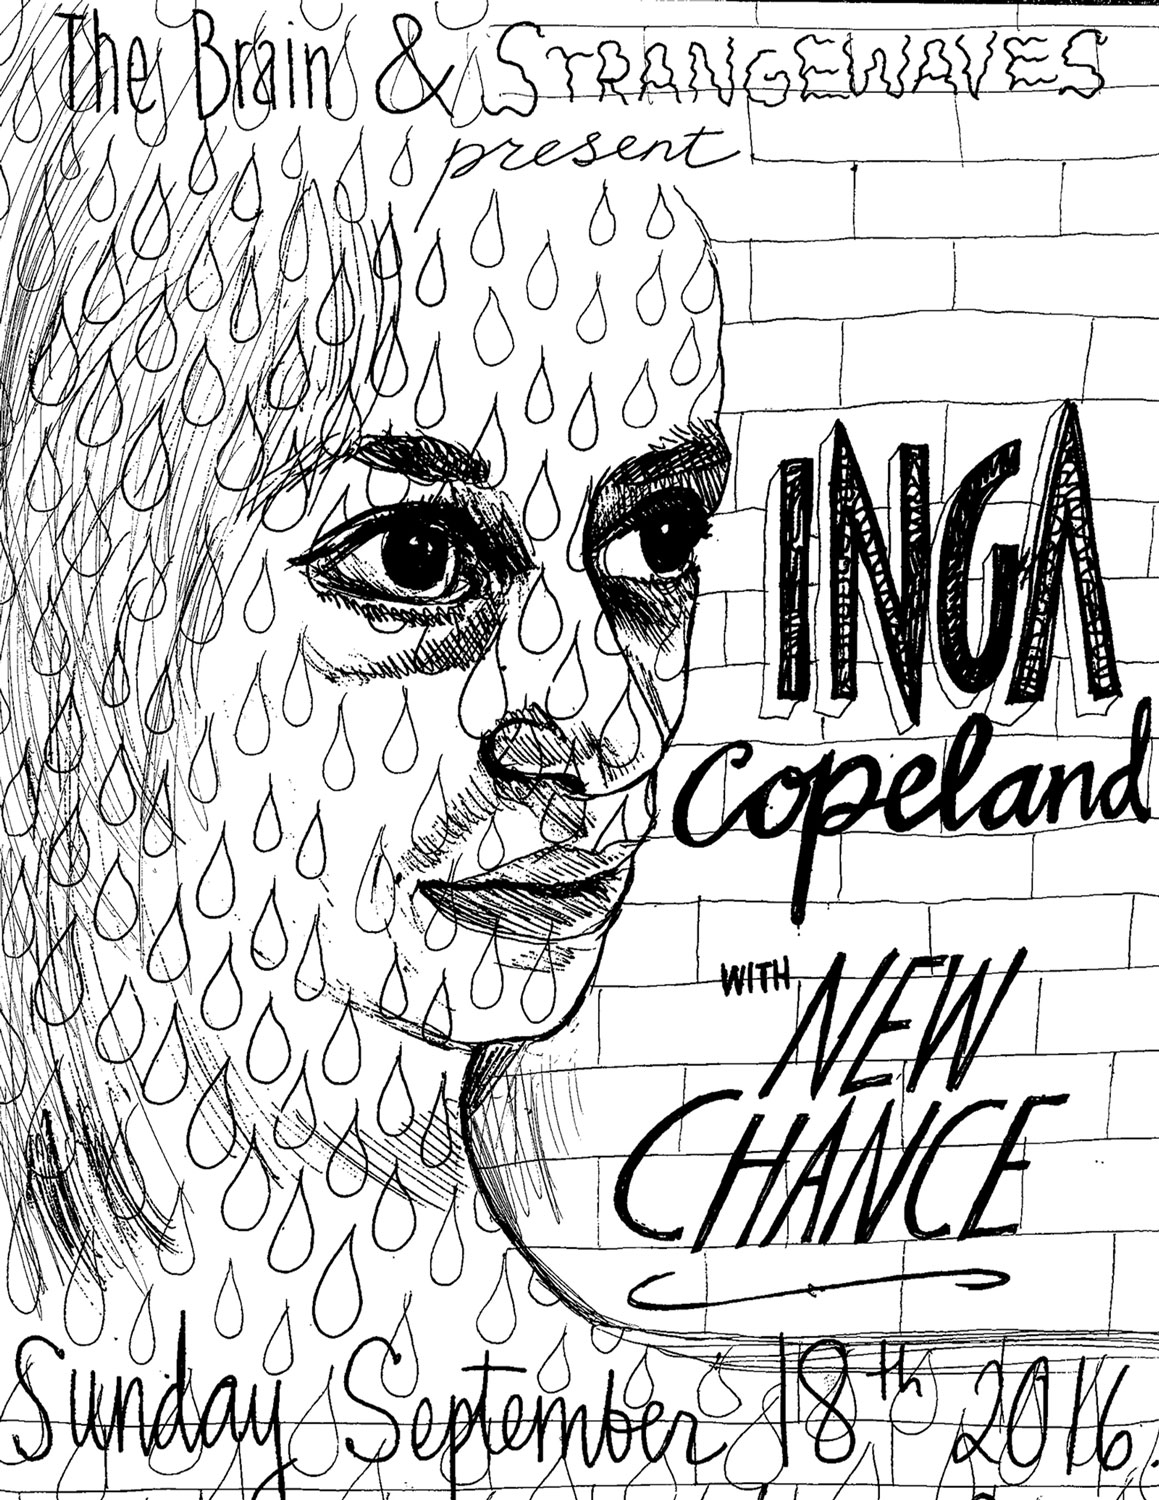 Inga Copeland with New Chance  @Strangebarn